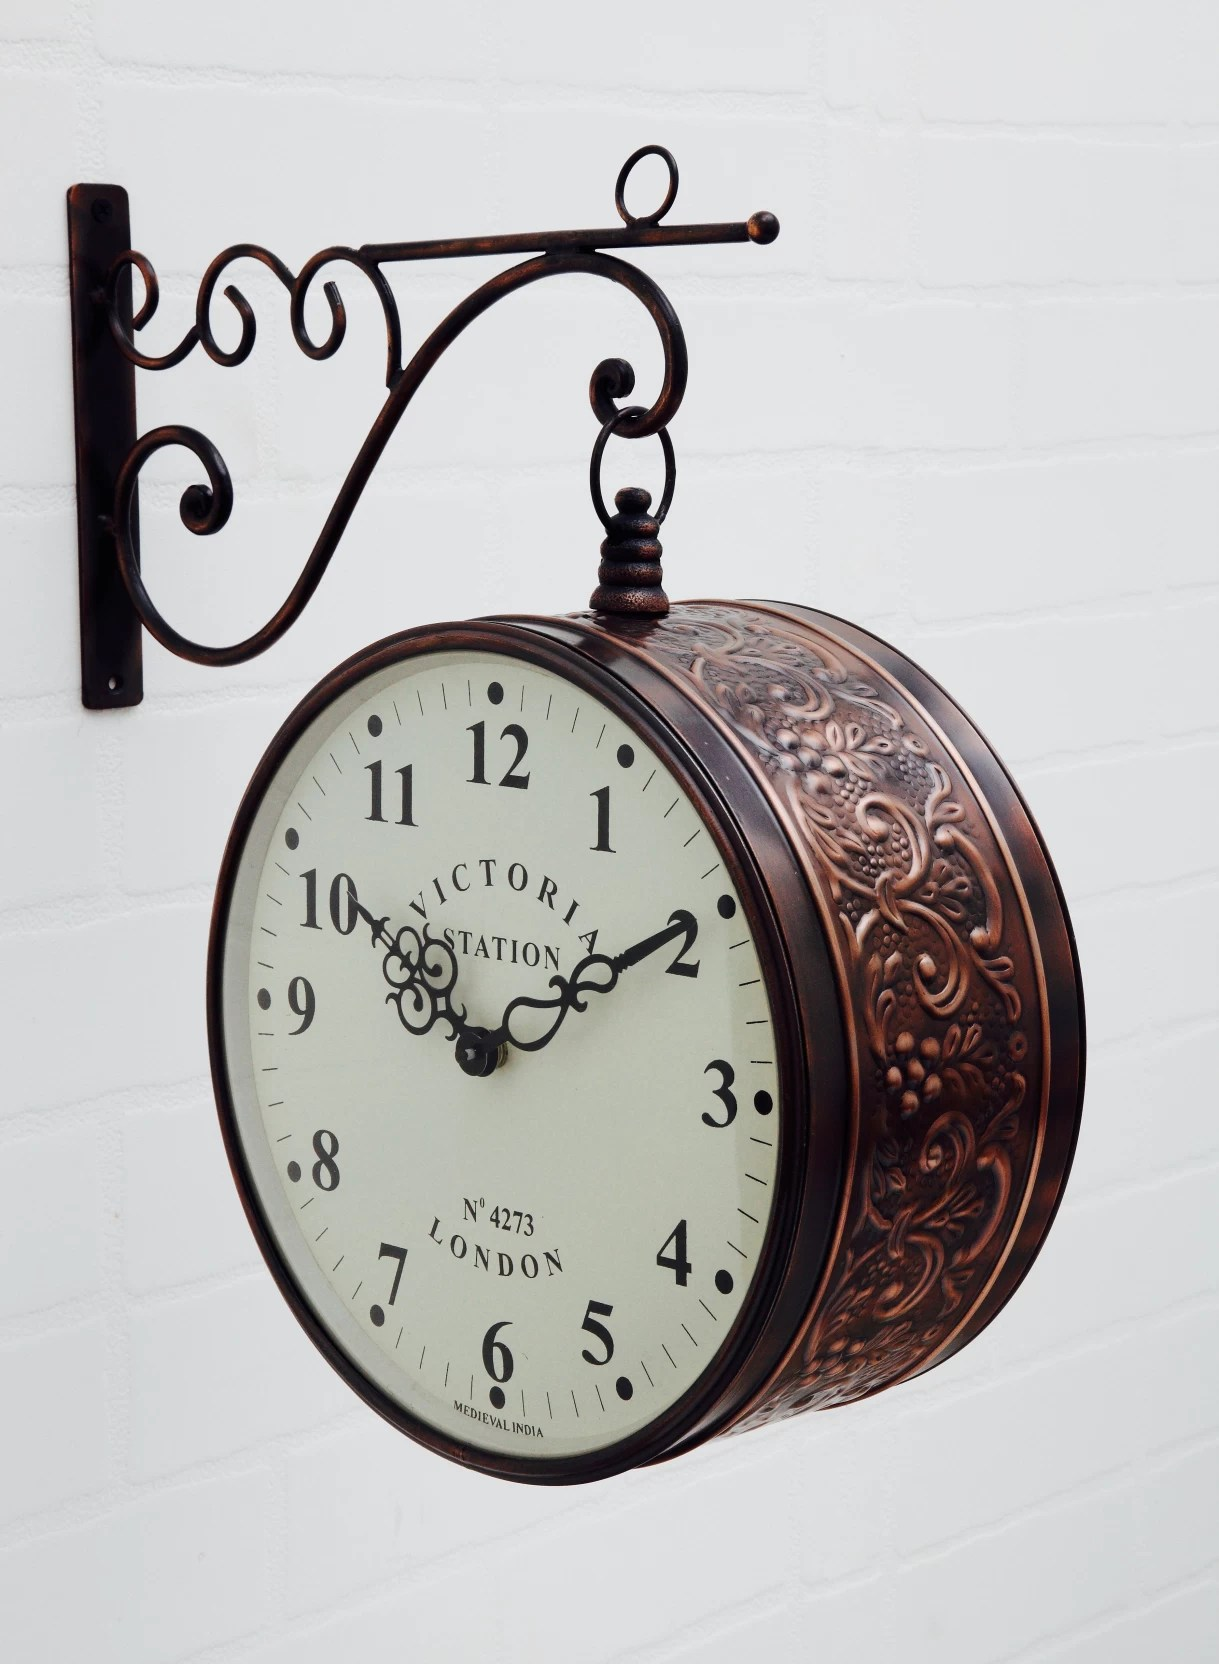 Online Analog Clock Medieval India Analog Wall Clock Price In India Buy Medieval India